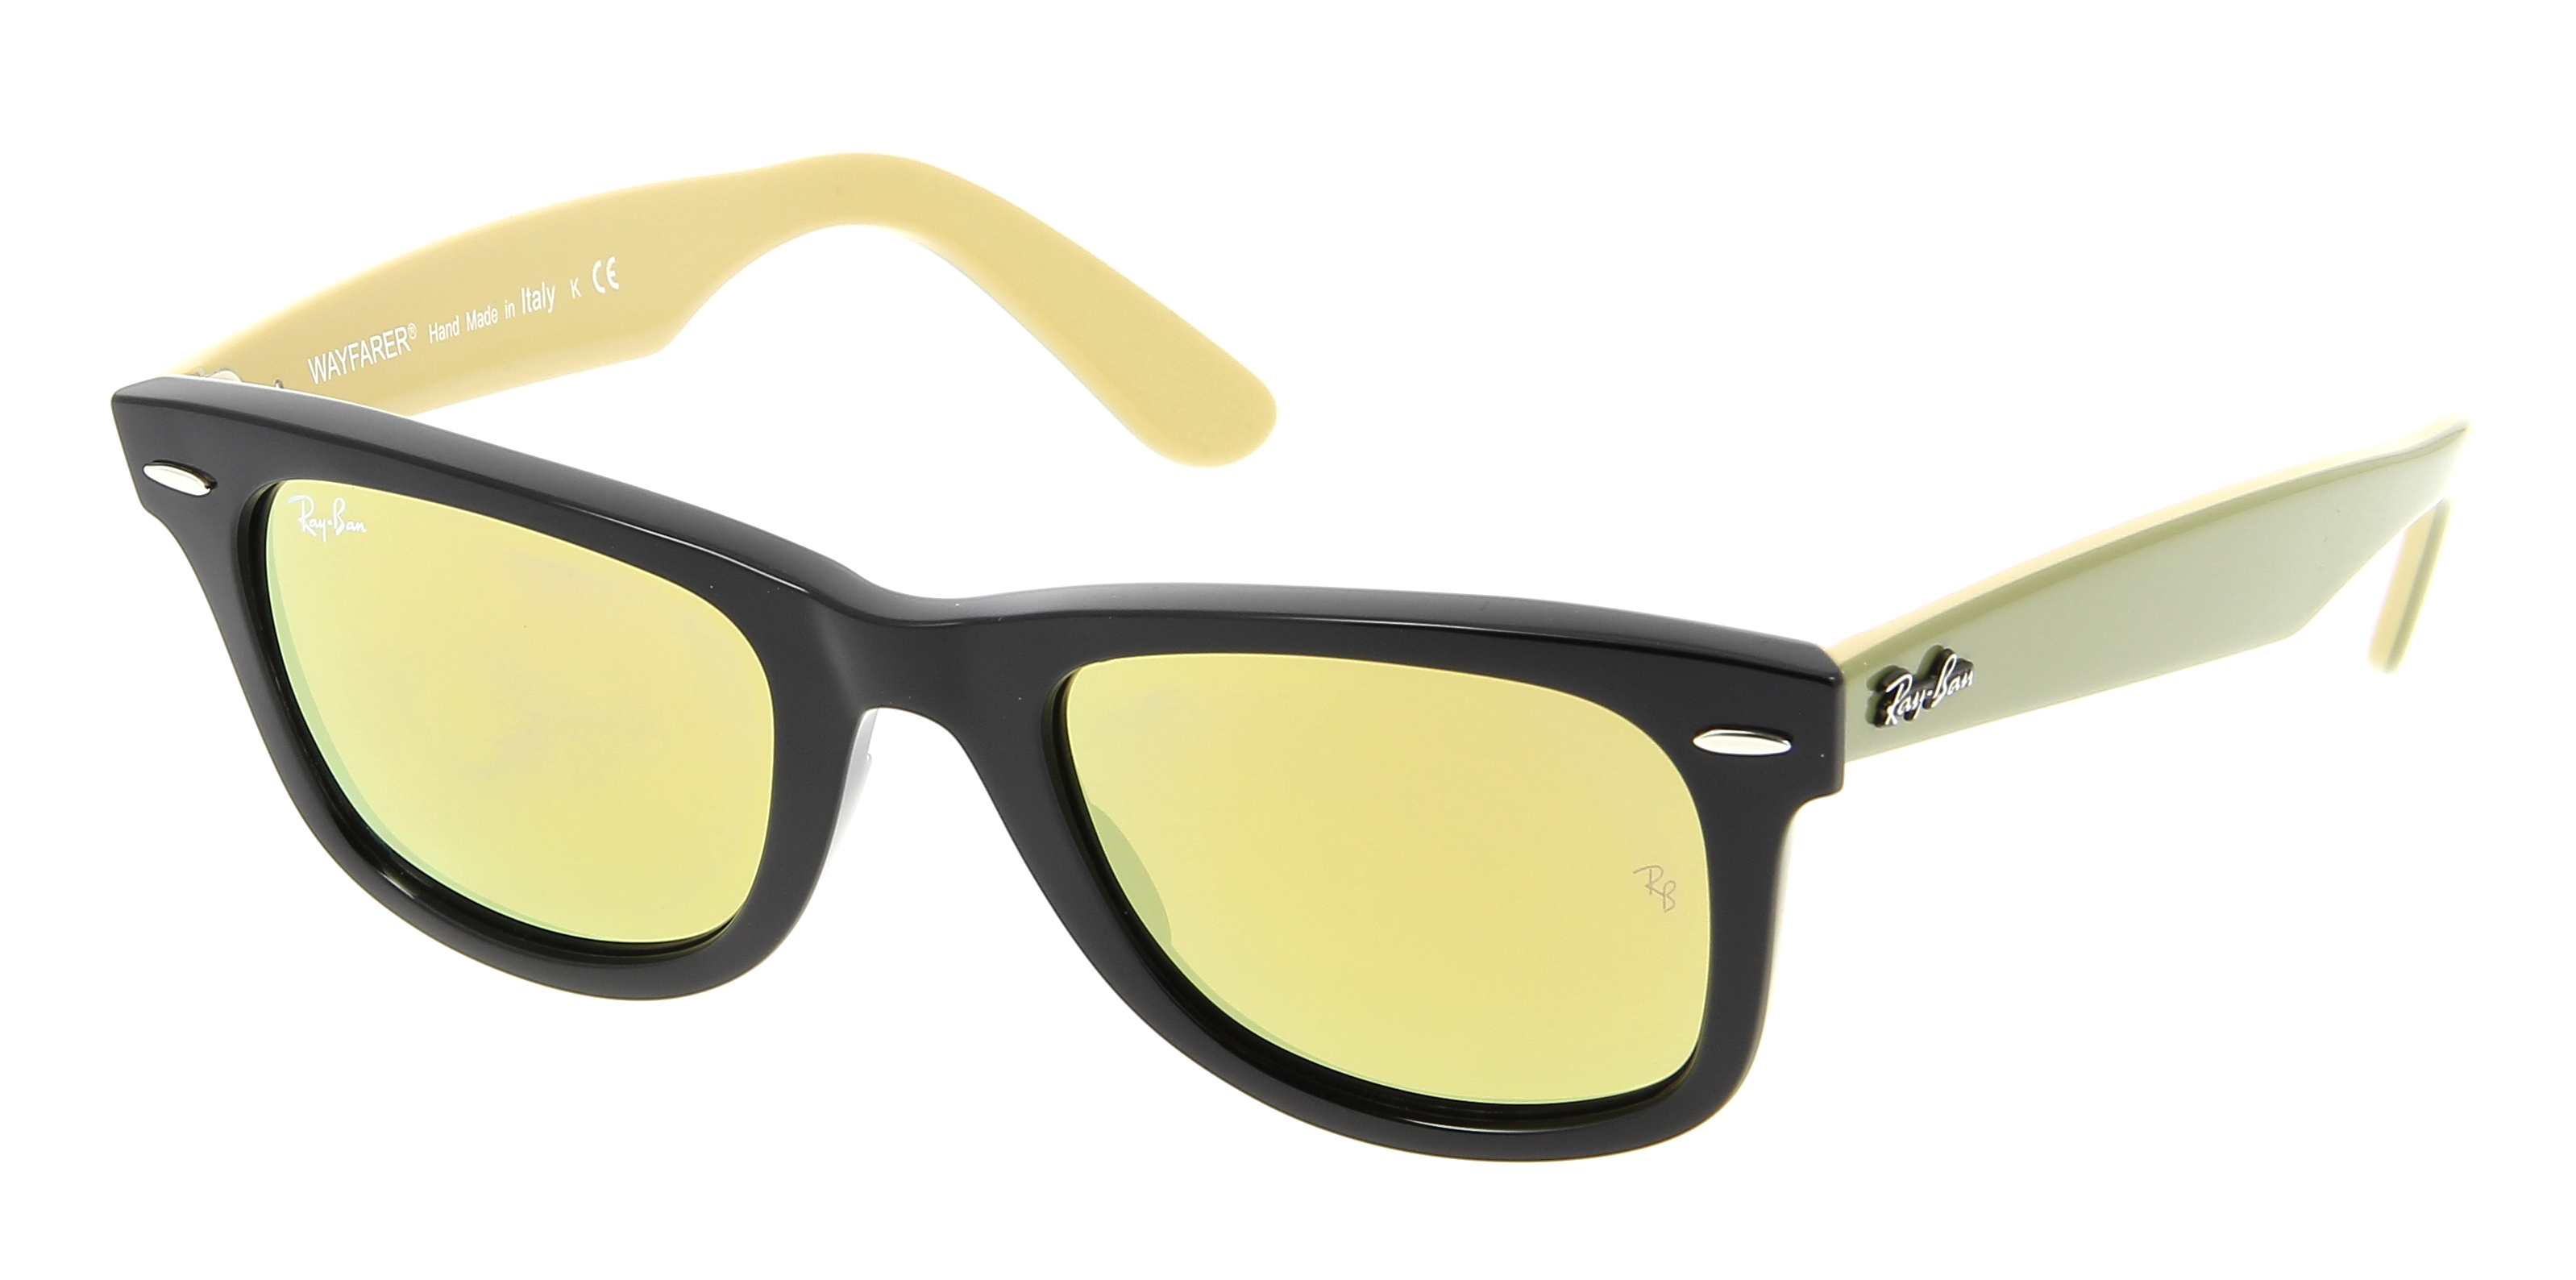 Ray ban coupon codes